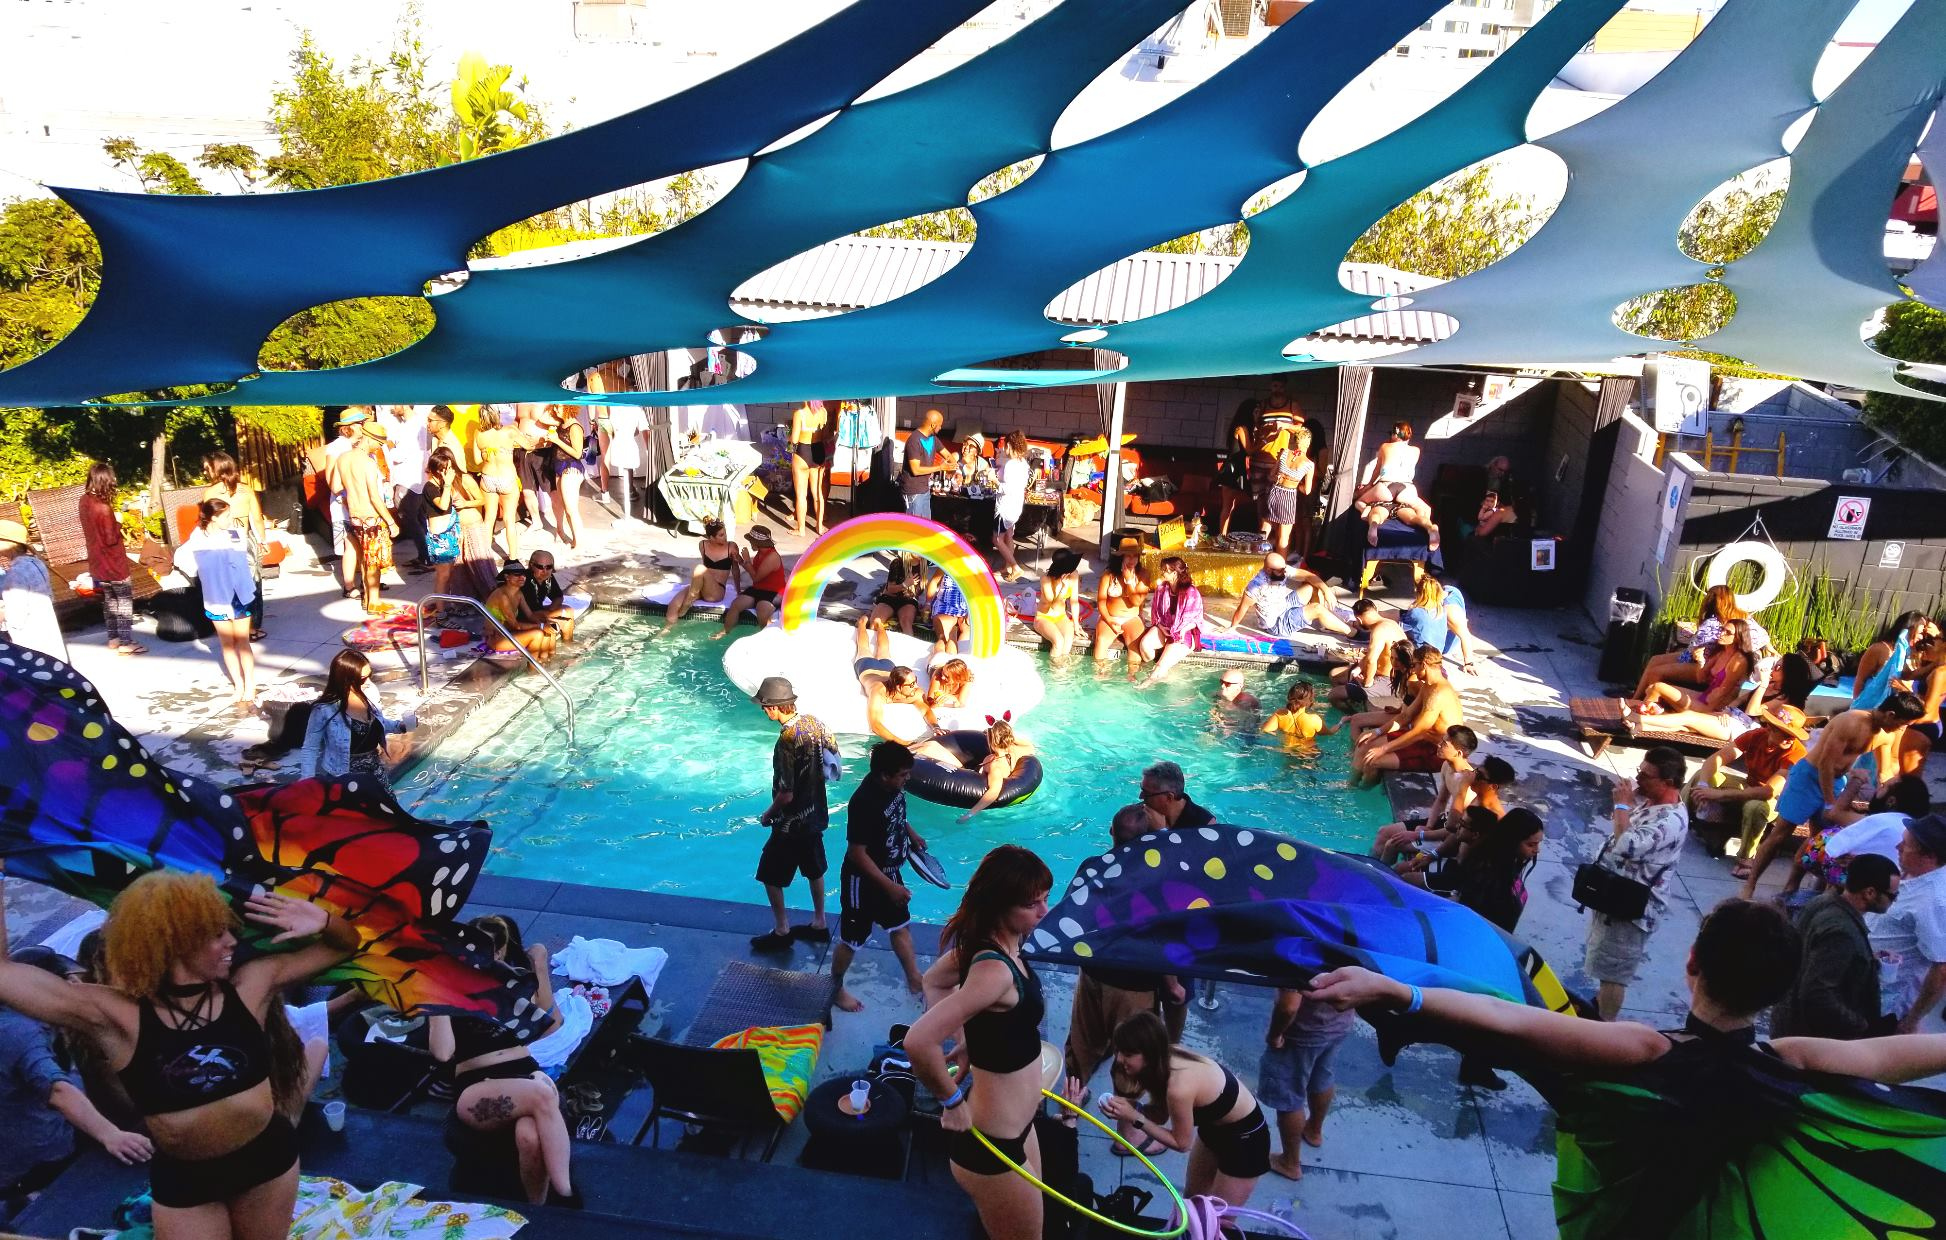 Crowd partying at Liquid Frequencies pool